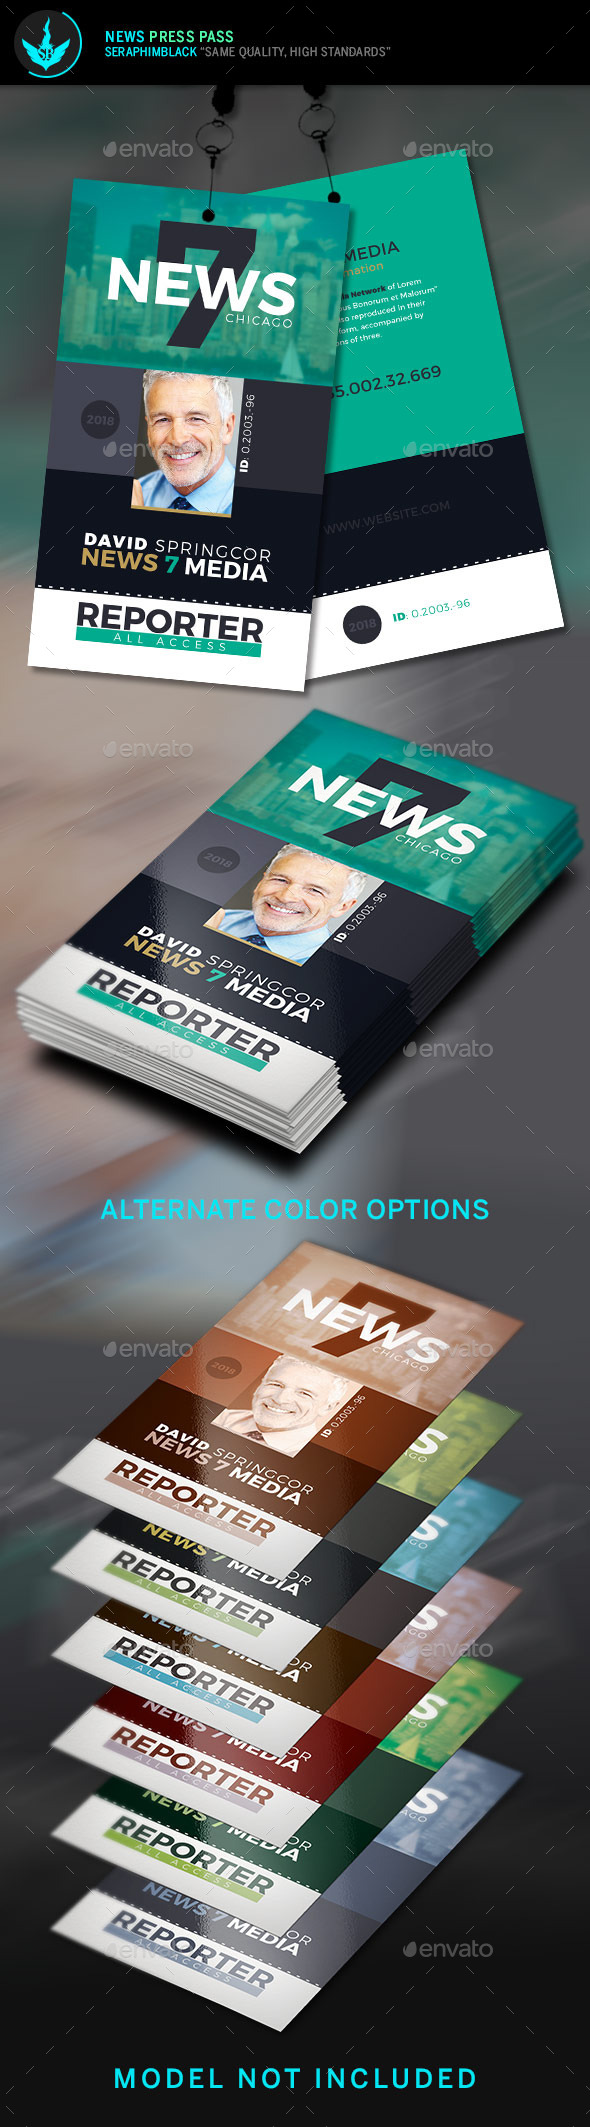 media pass template - press pass template by seraphimblack graphicriver